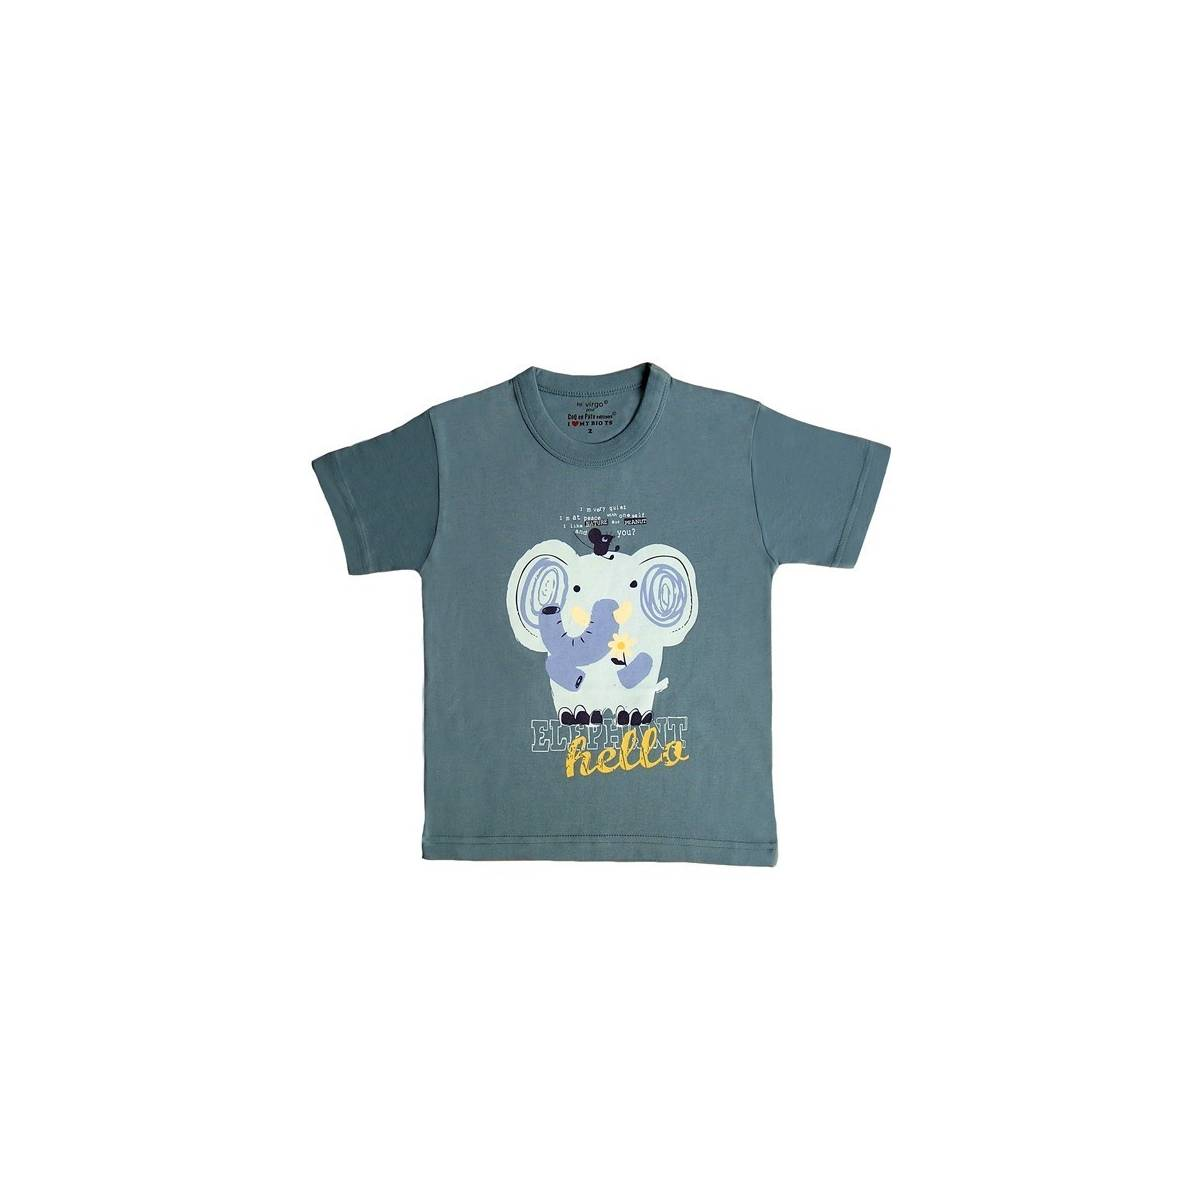 Blue-grey elephant t-shirt